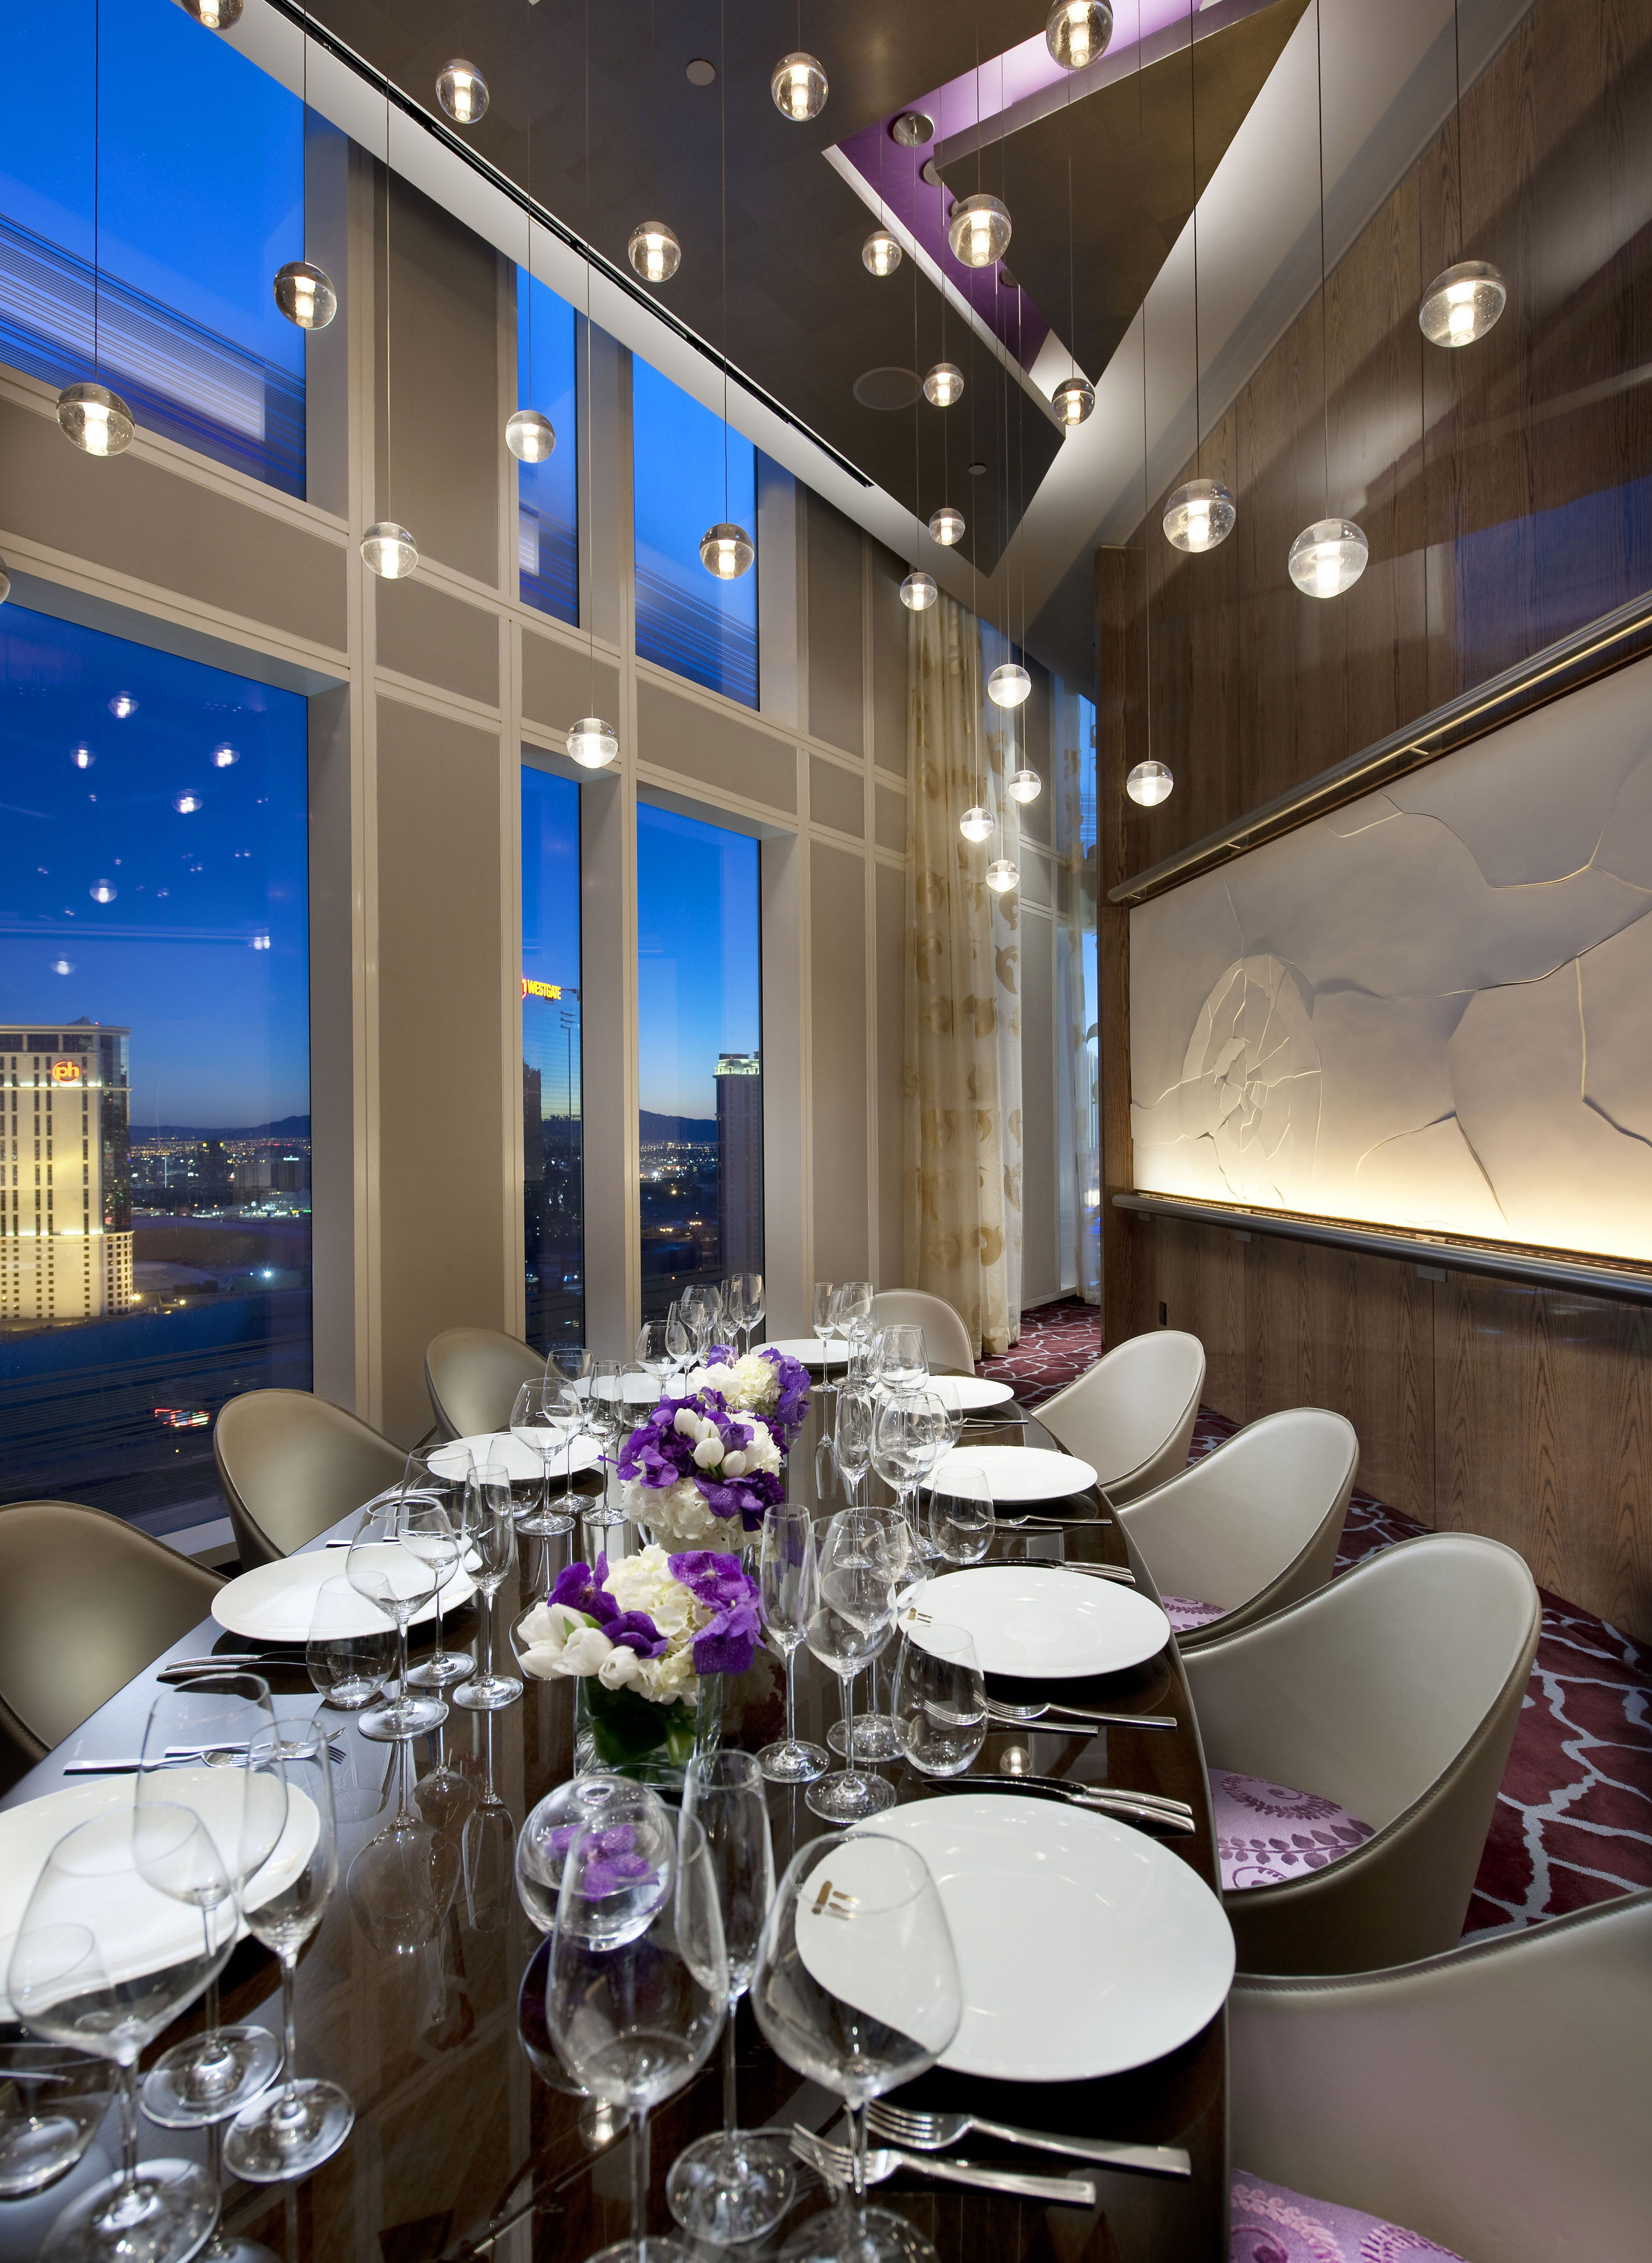 Mandarin Oriental Las Vegas Is A Sophisticated Luxury Hotel And Residences Private Dining Room